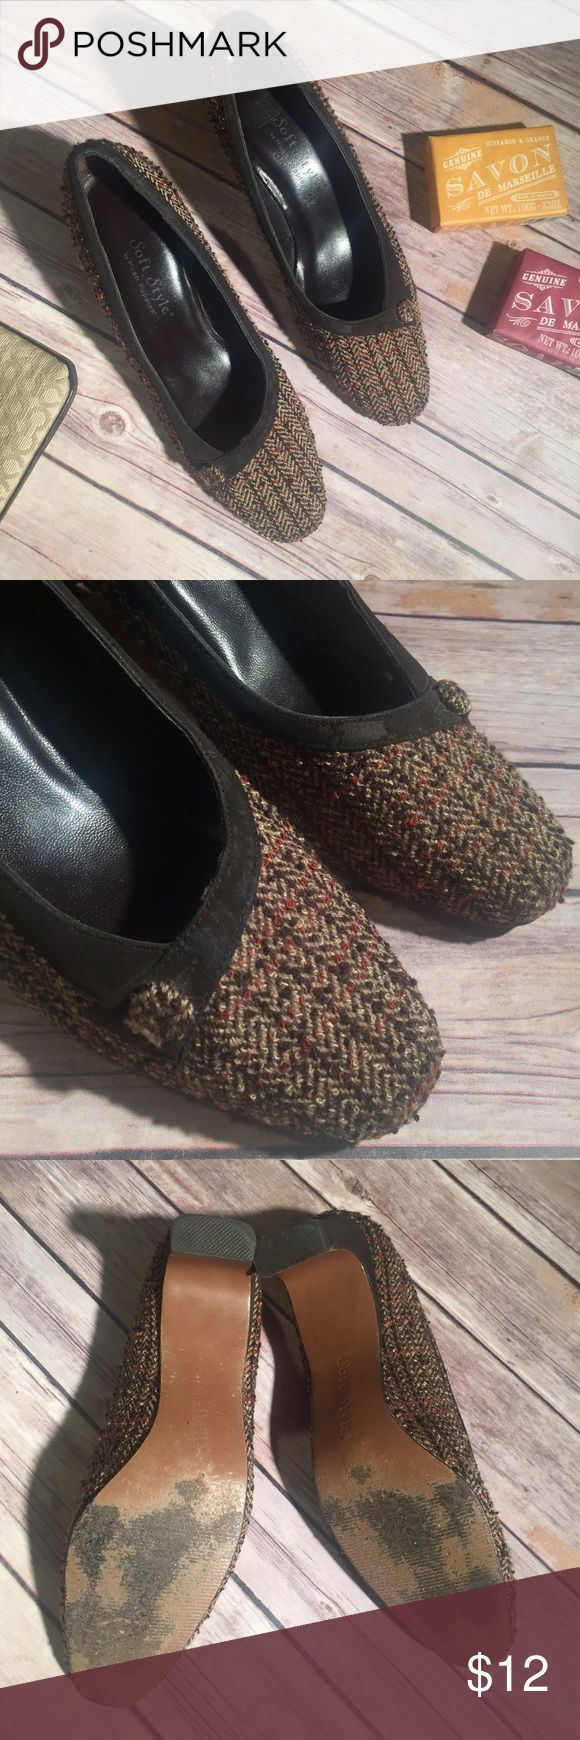 """HUSH PUPPIES Soft Style heels Tweed and leather 2"""" heel. Fits more like a 7 narrow or 6.5. Scuffs on leather and soles, but still look tailored, tidy and perfect for work! Hush Puppies Shoes Heels"""